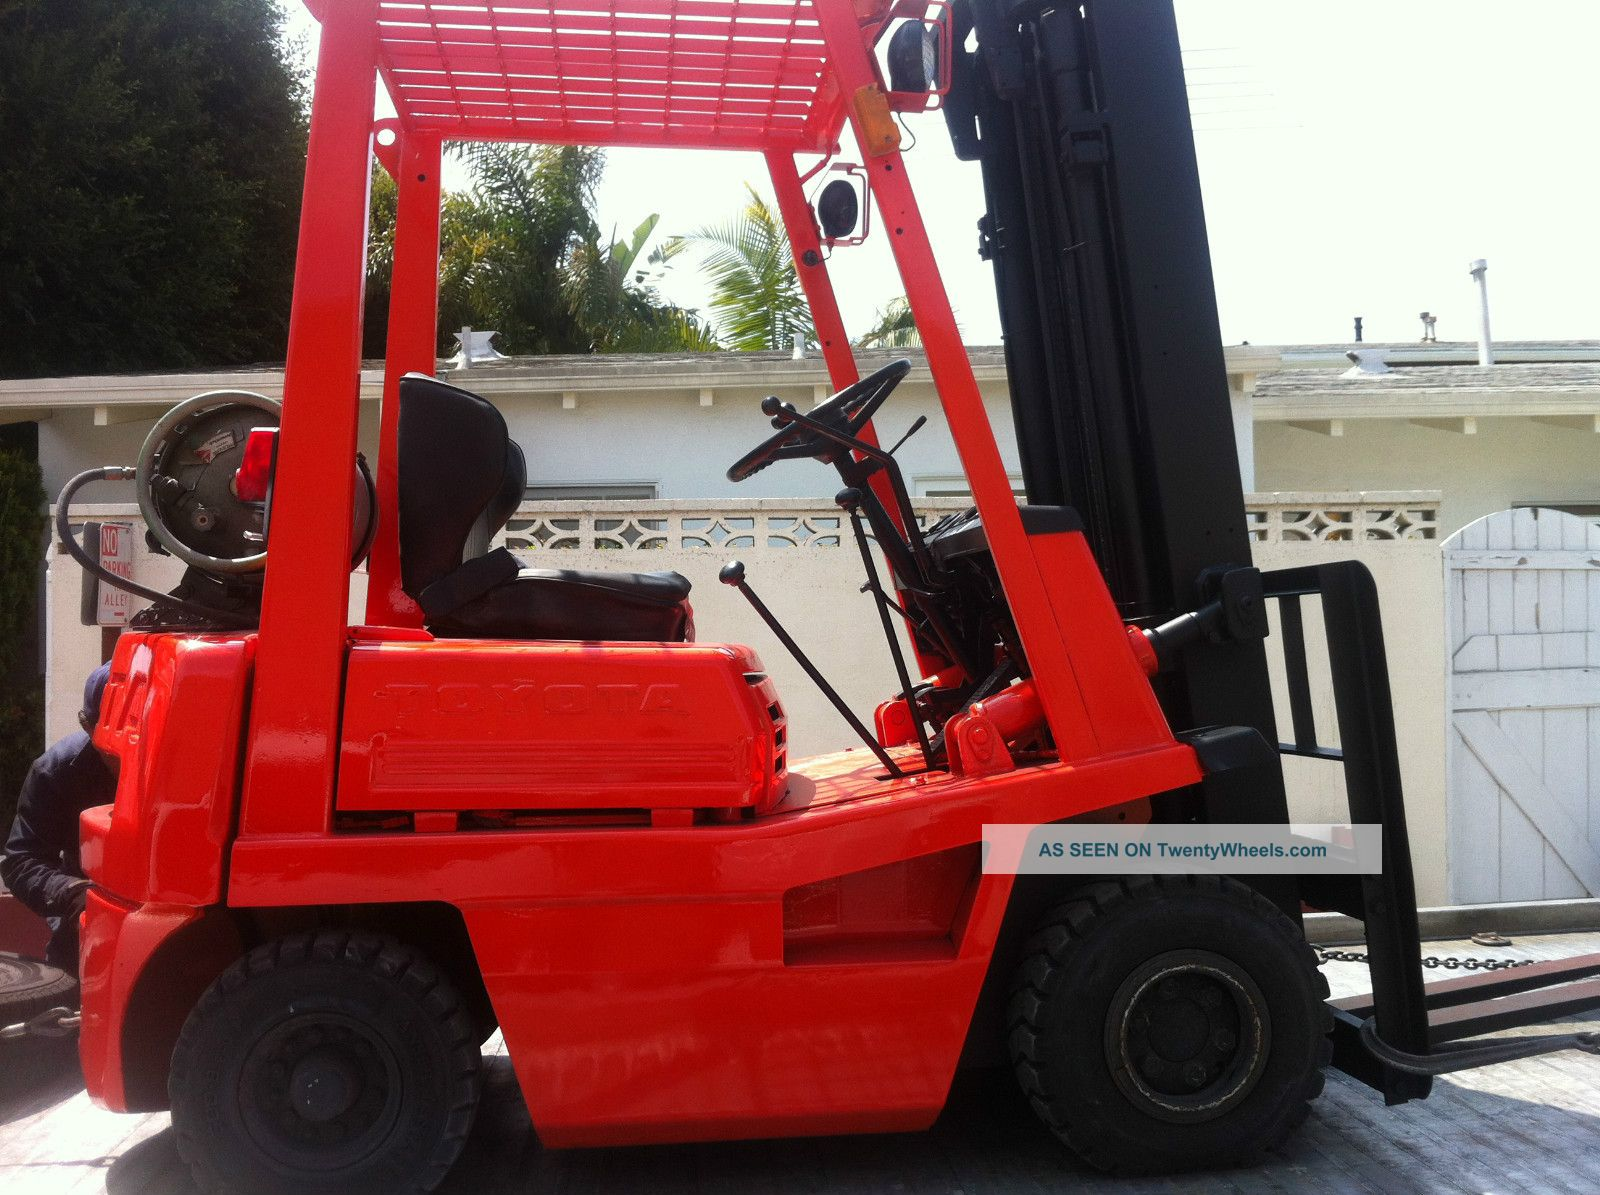 Toyota Forklift 1500lb 4fg15 Forklifts & Other Lifts photo